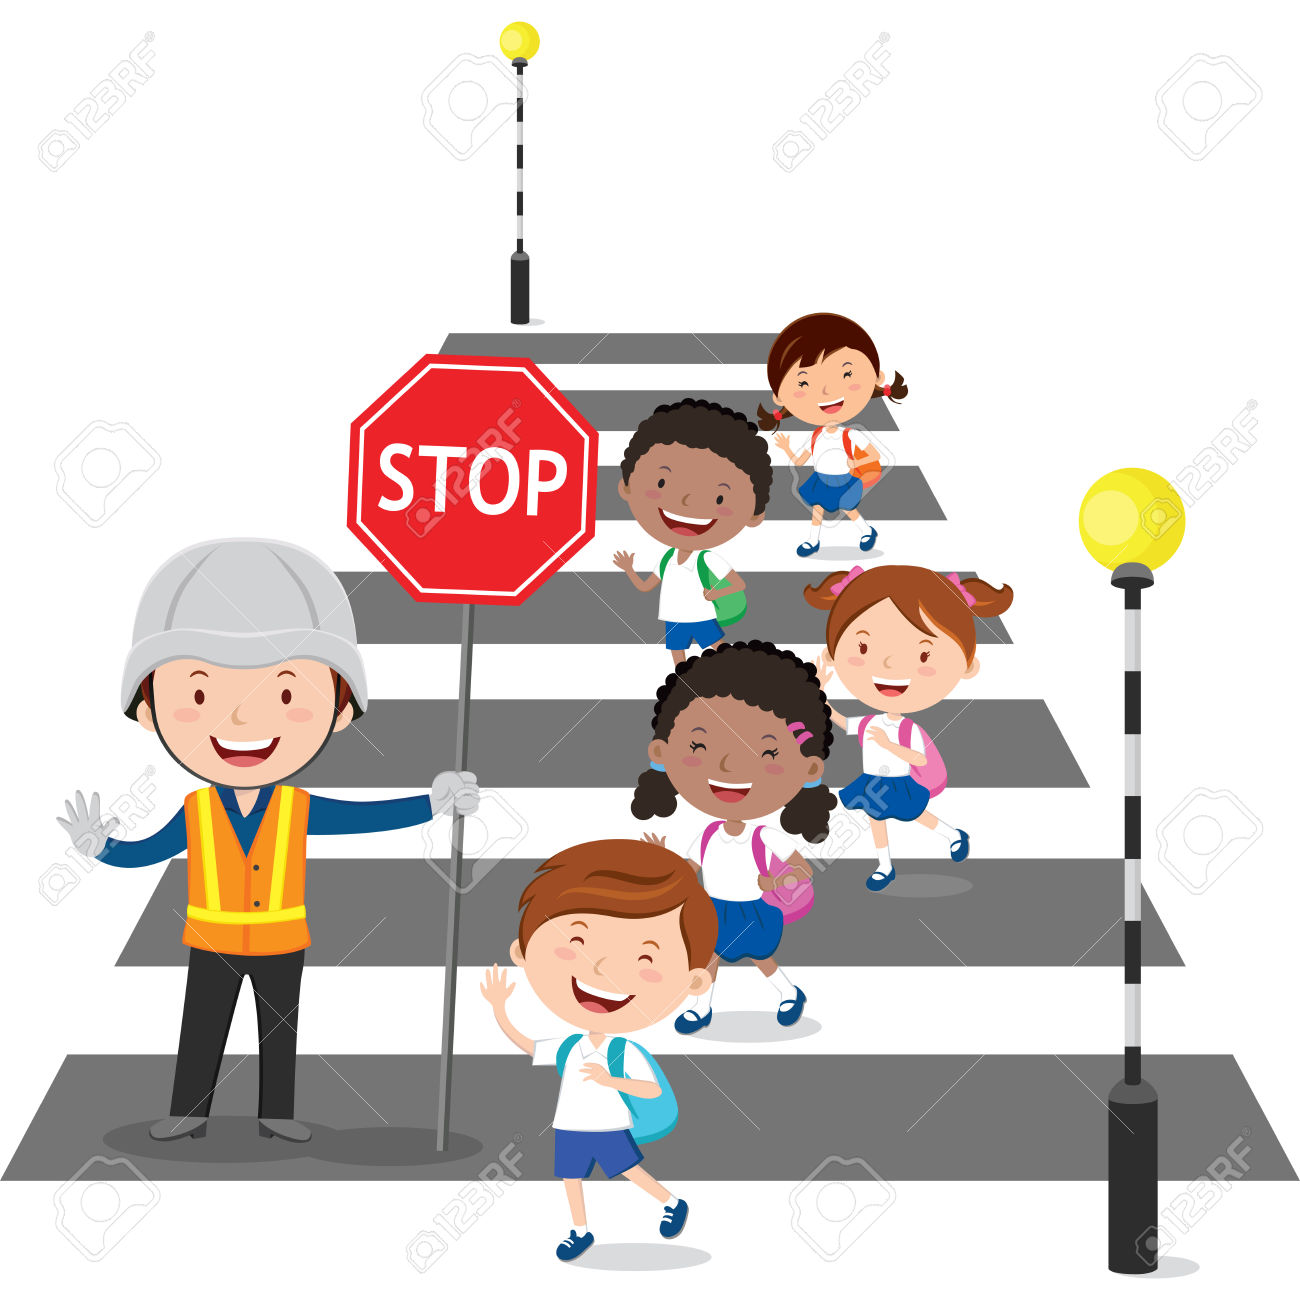 110,377 Stop Sign Stock Vector Illustration And Royalty Free Stop.